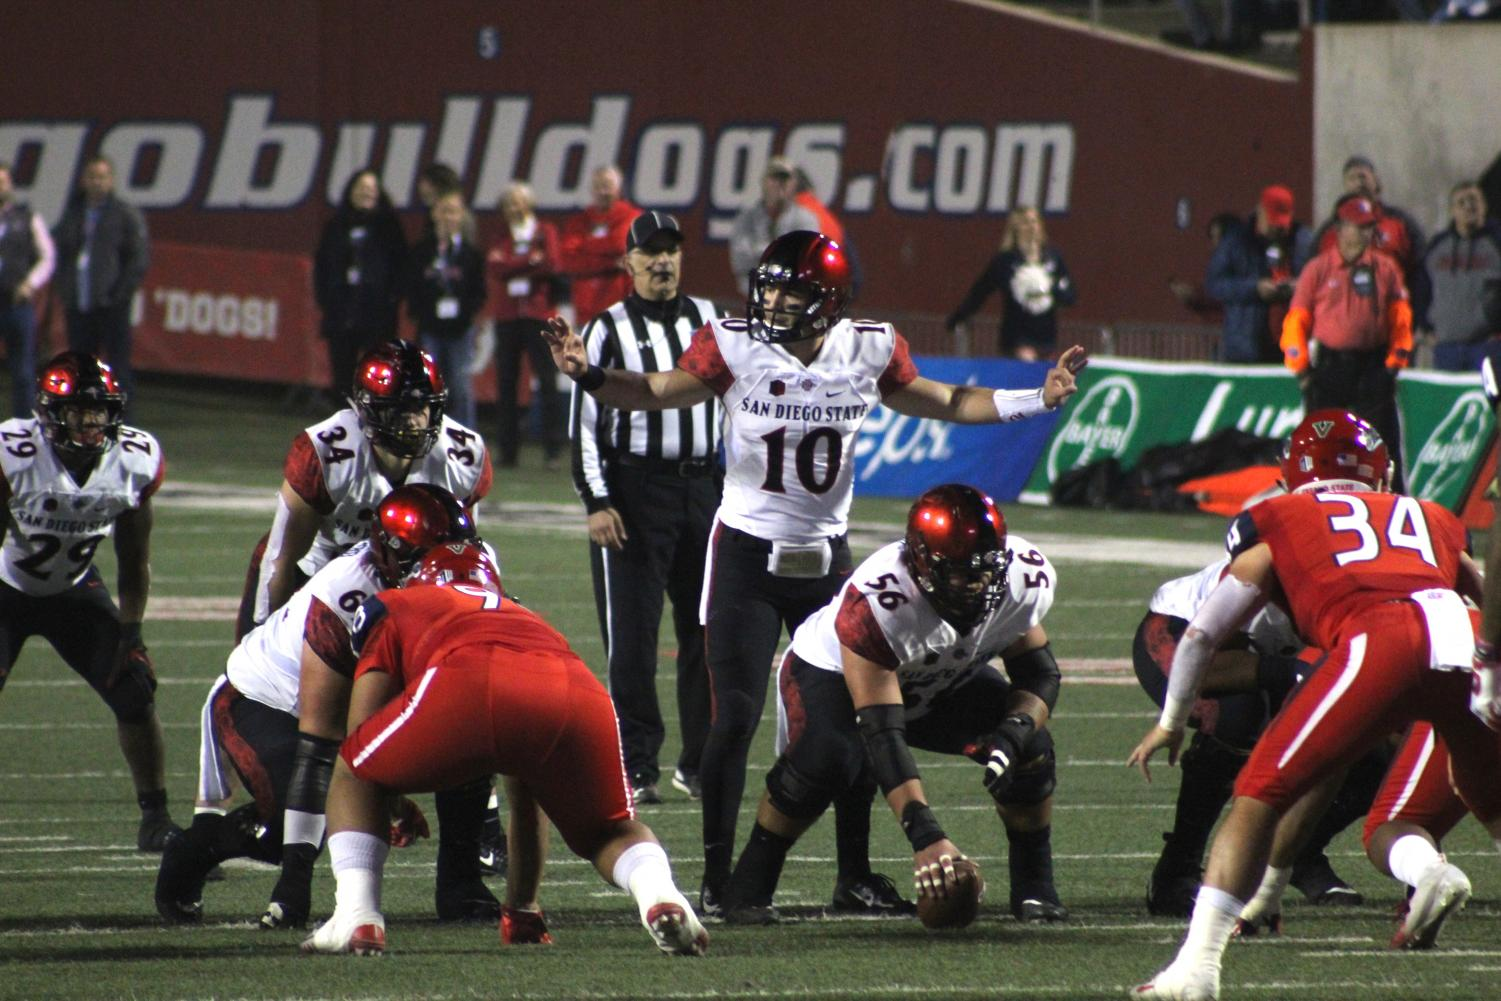 Senior quarterback Christian Chapman prepares for the snap during the Aztecs' 23-14 loss to Fresno State on Nov. 17 at Bulldog Stadium.